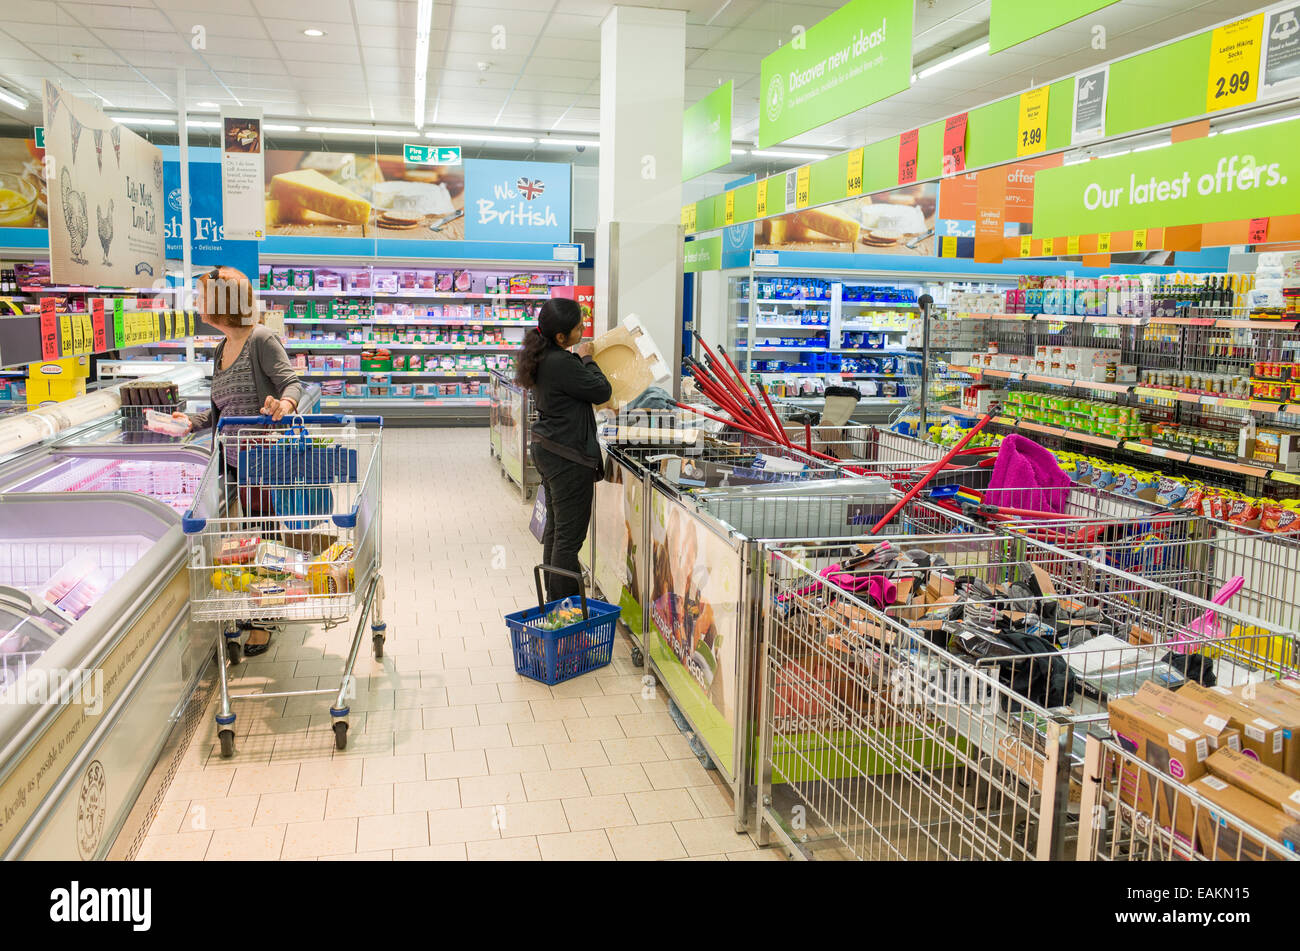 Shopping in Lidl supermarket, London, England, UK - Stock Image